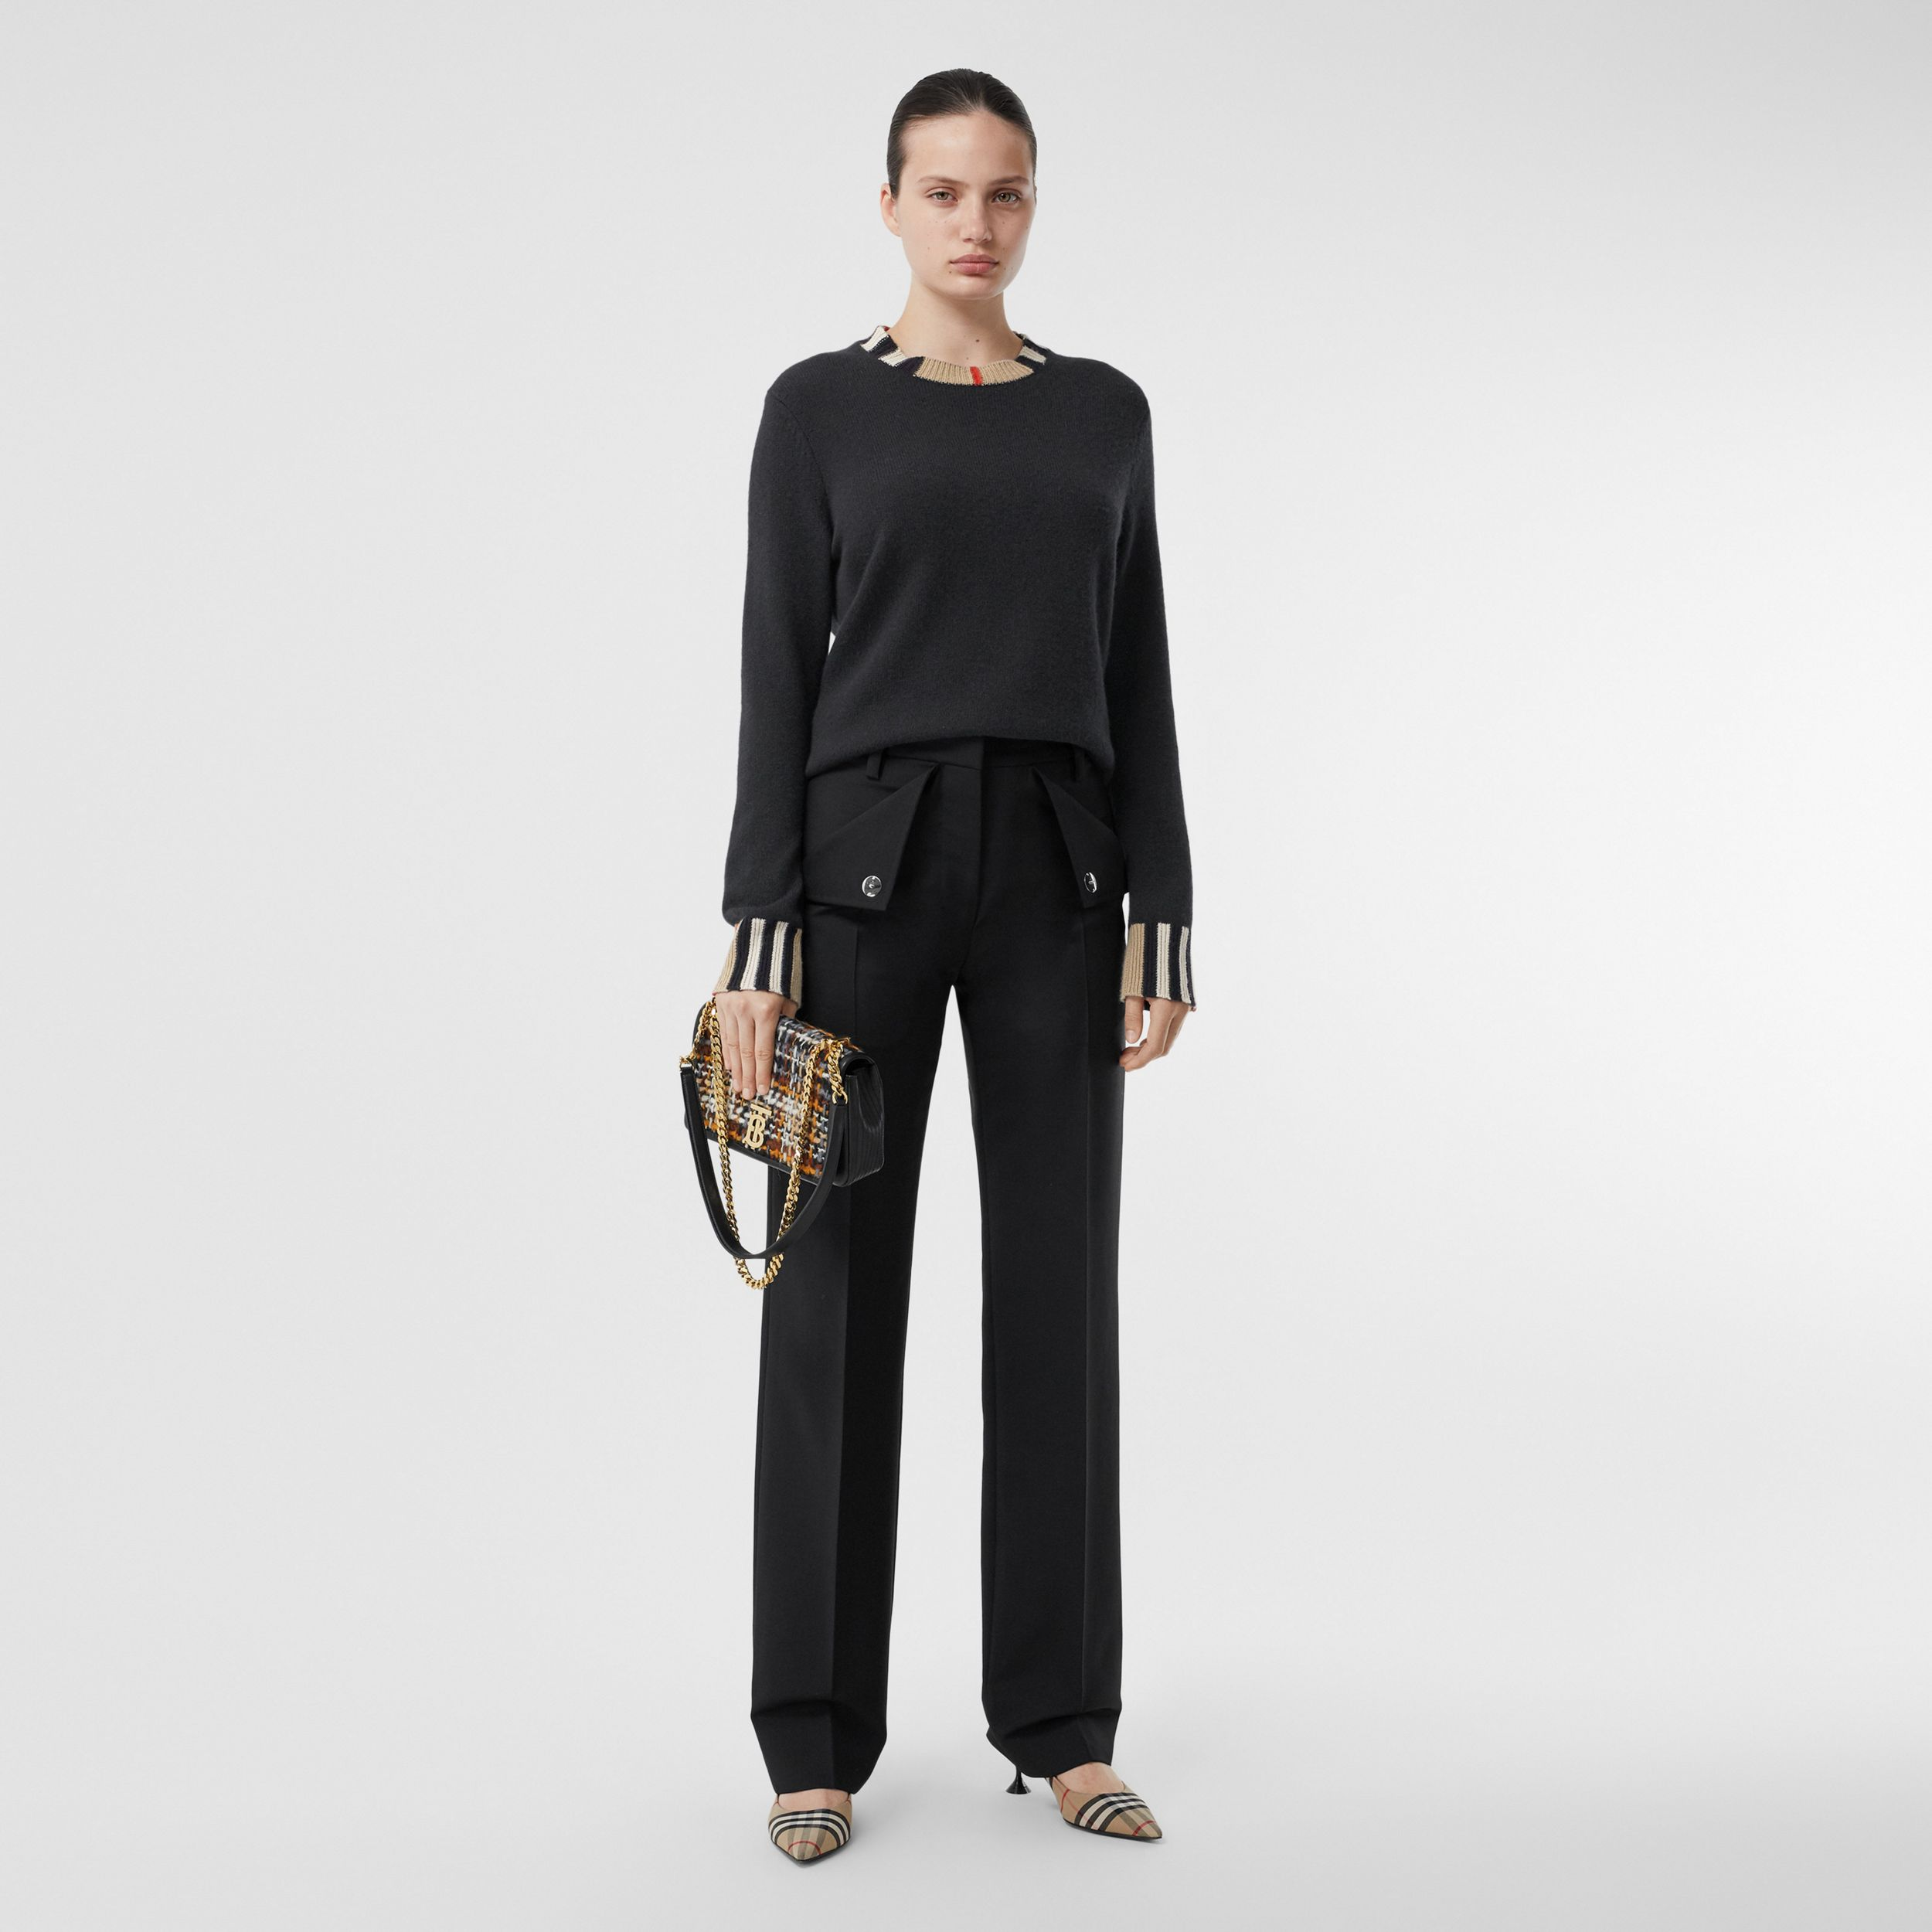 Icon Stripe Trim Cashmere Sweater in Black - Women | Burberry Hong Kong S.A.R. - 1